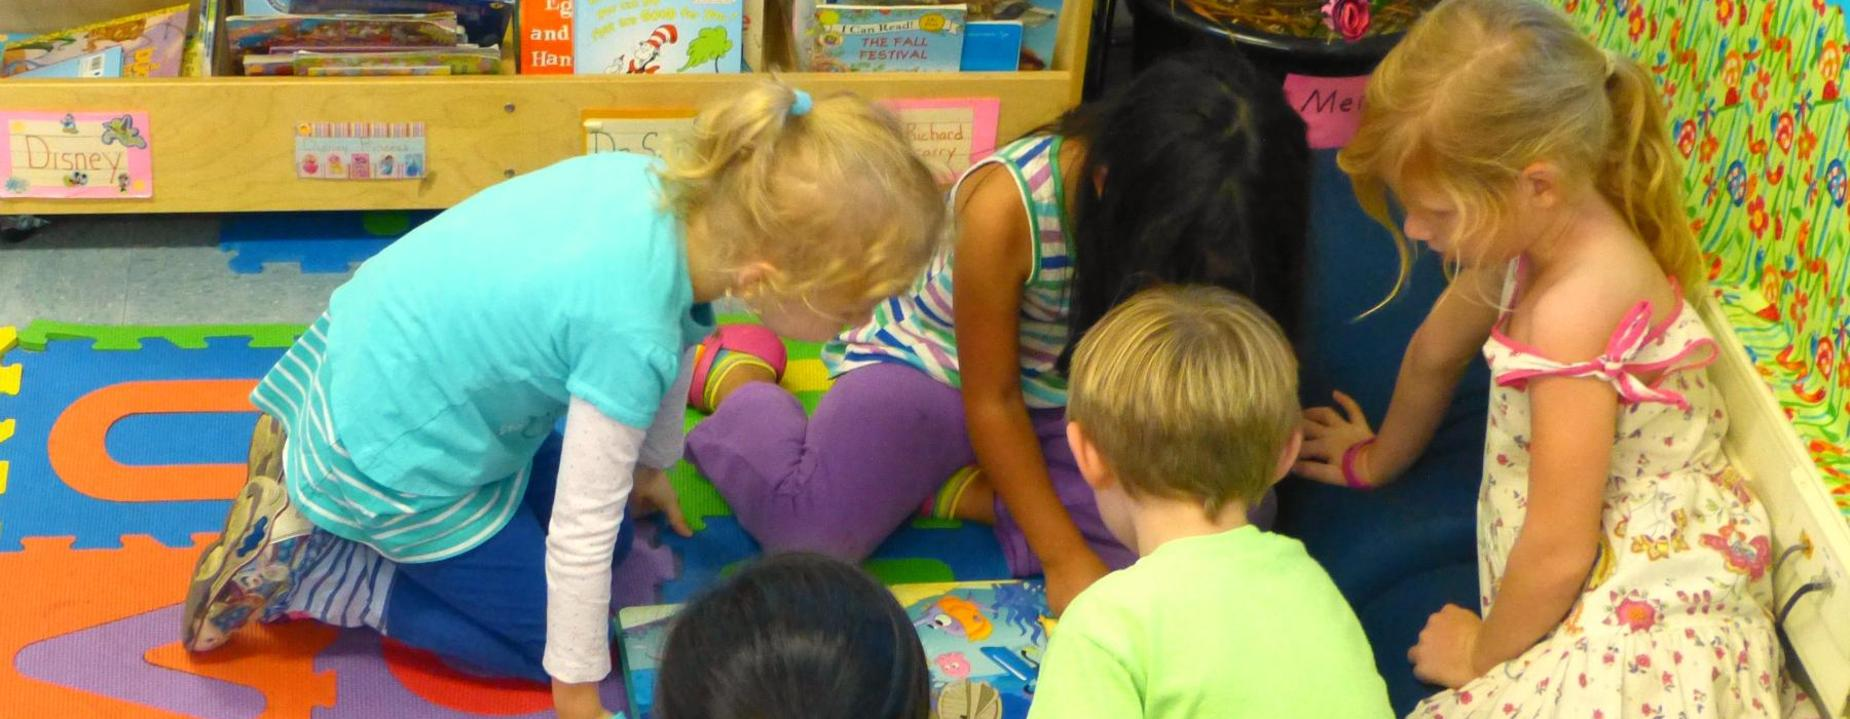 students in playroom